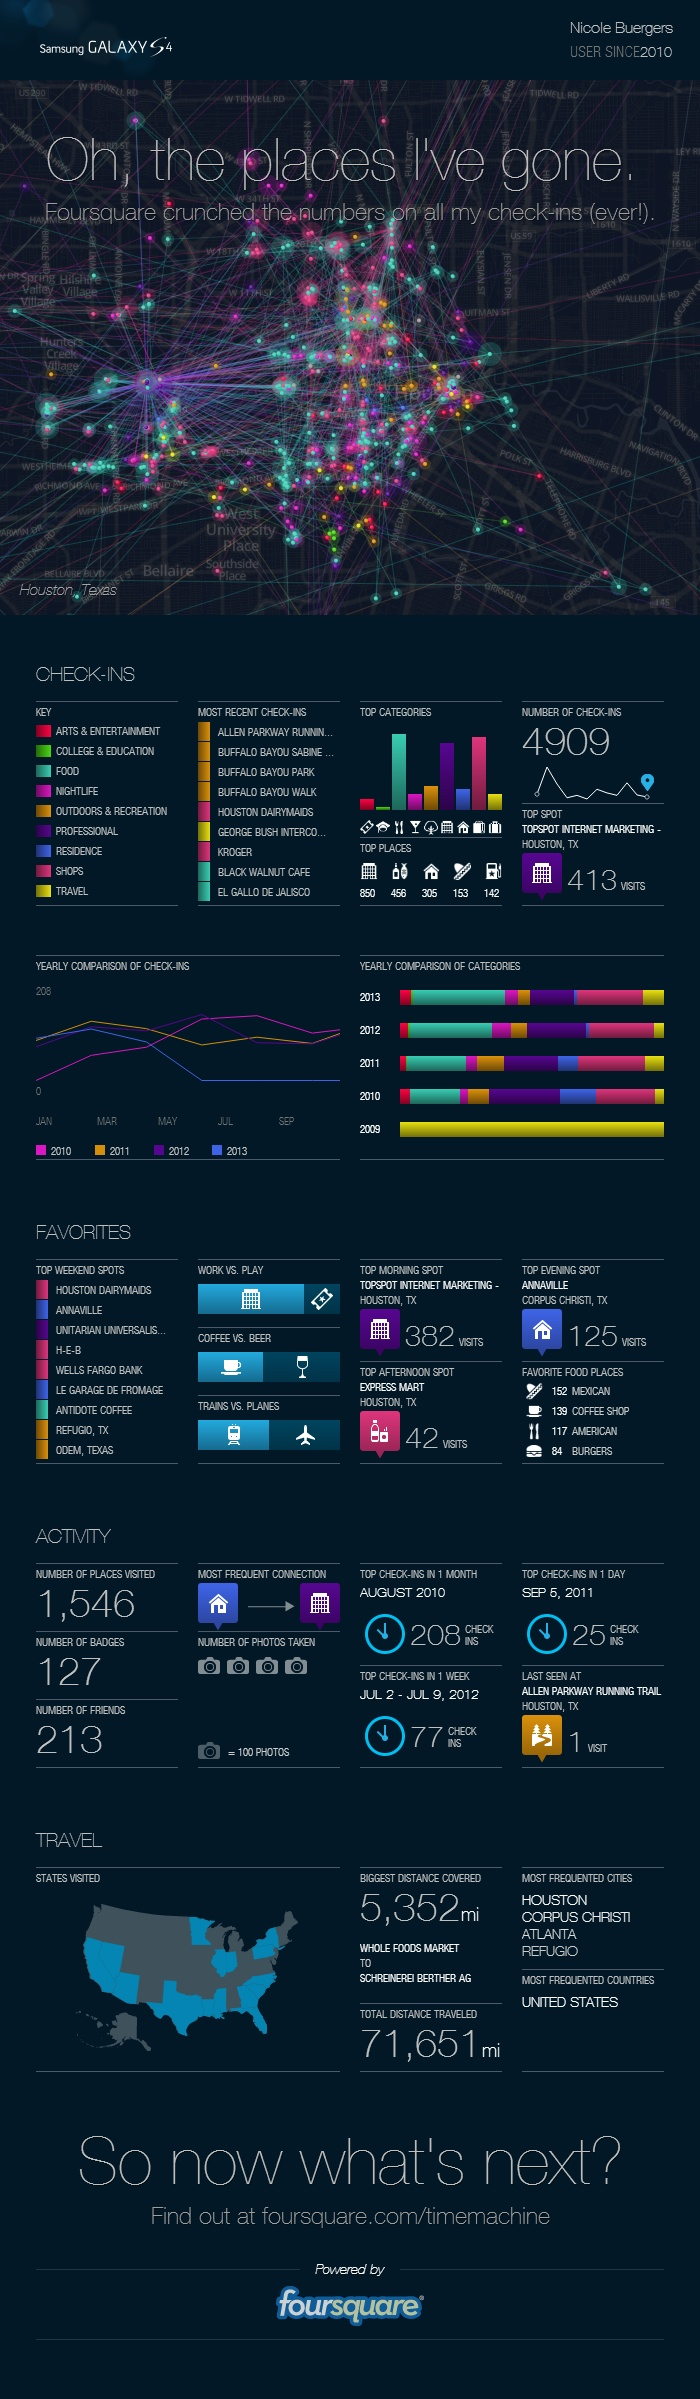 Foursquare Time Machine infographic